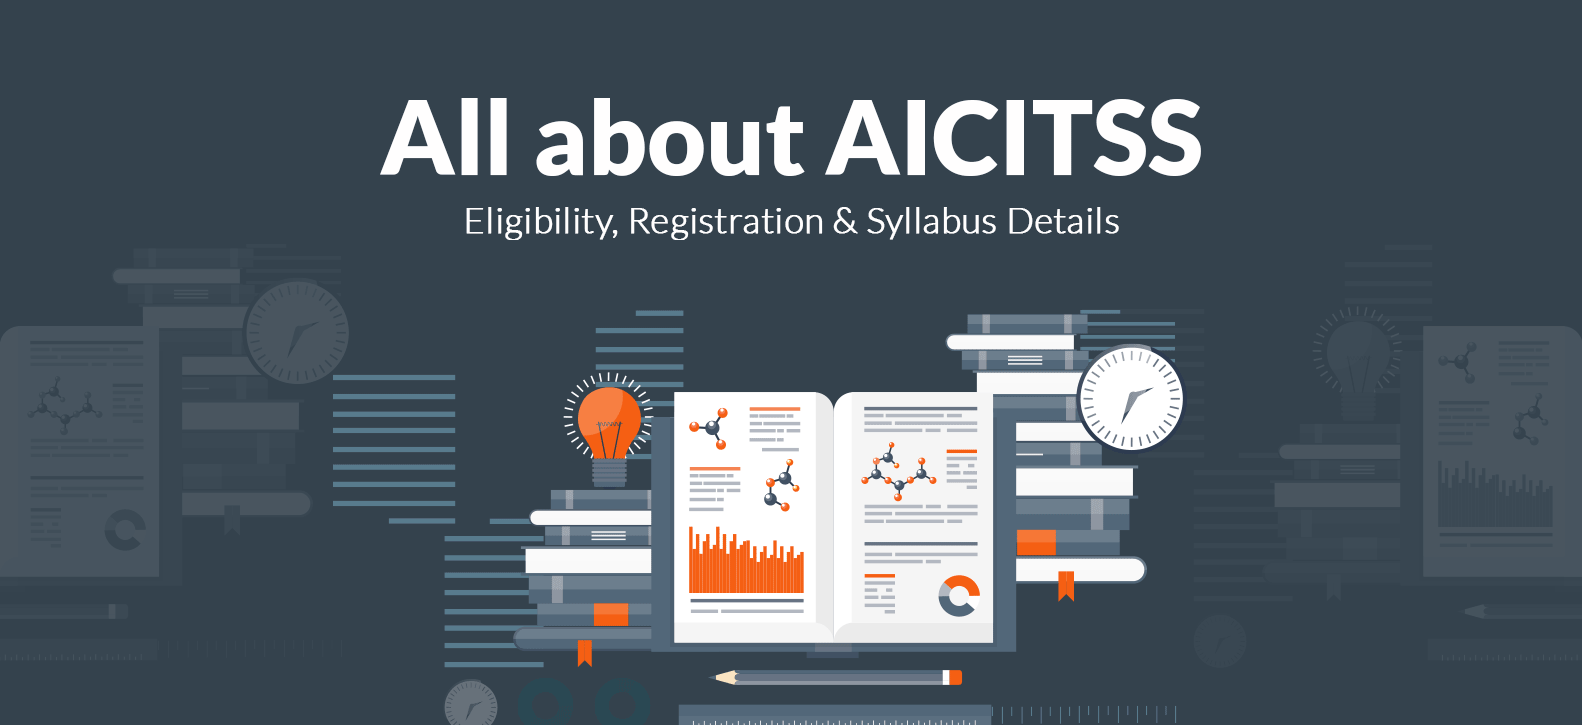 All about AICITSS: Eligibility, Registration and Syllabus Details